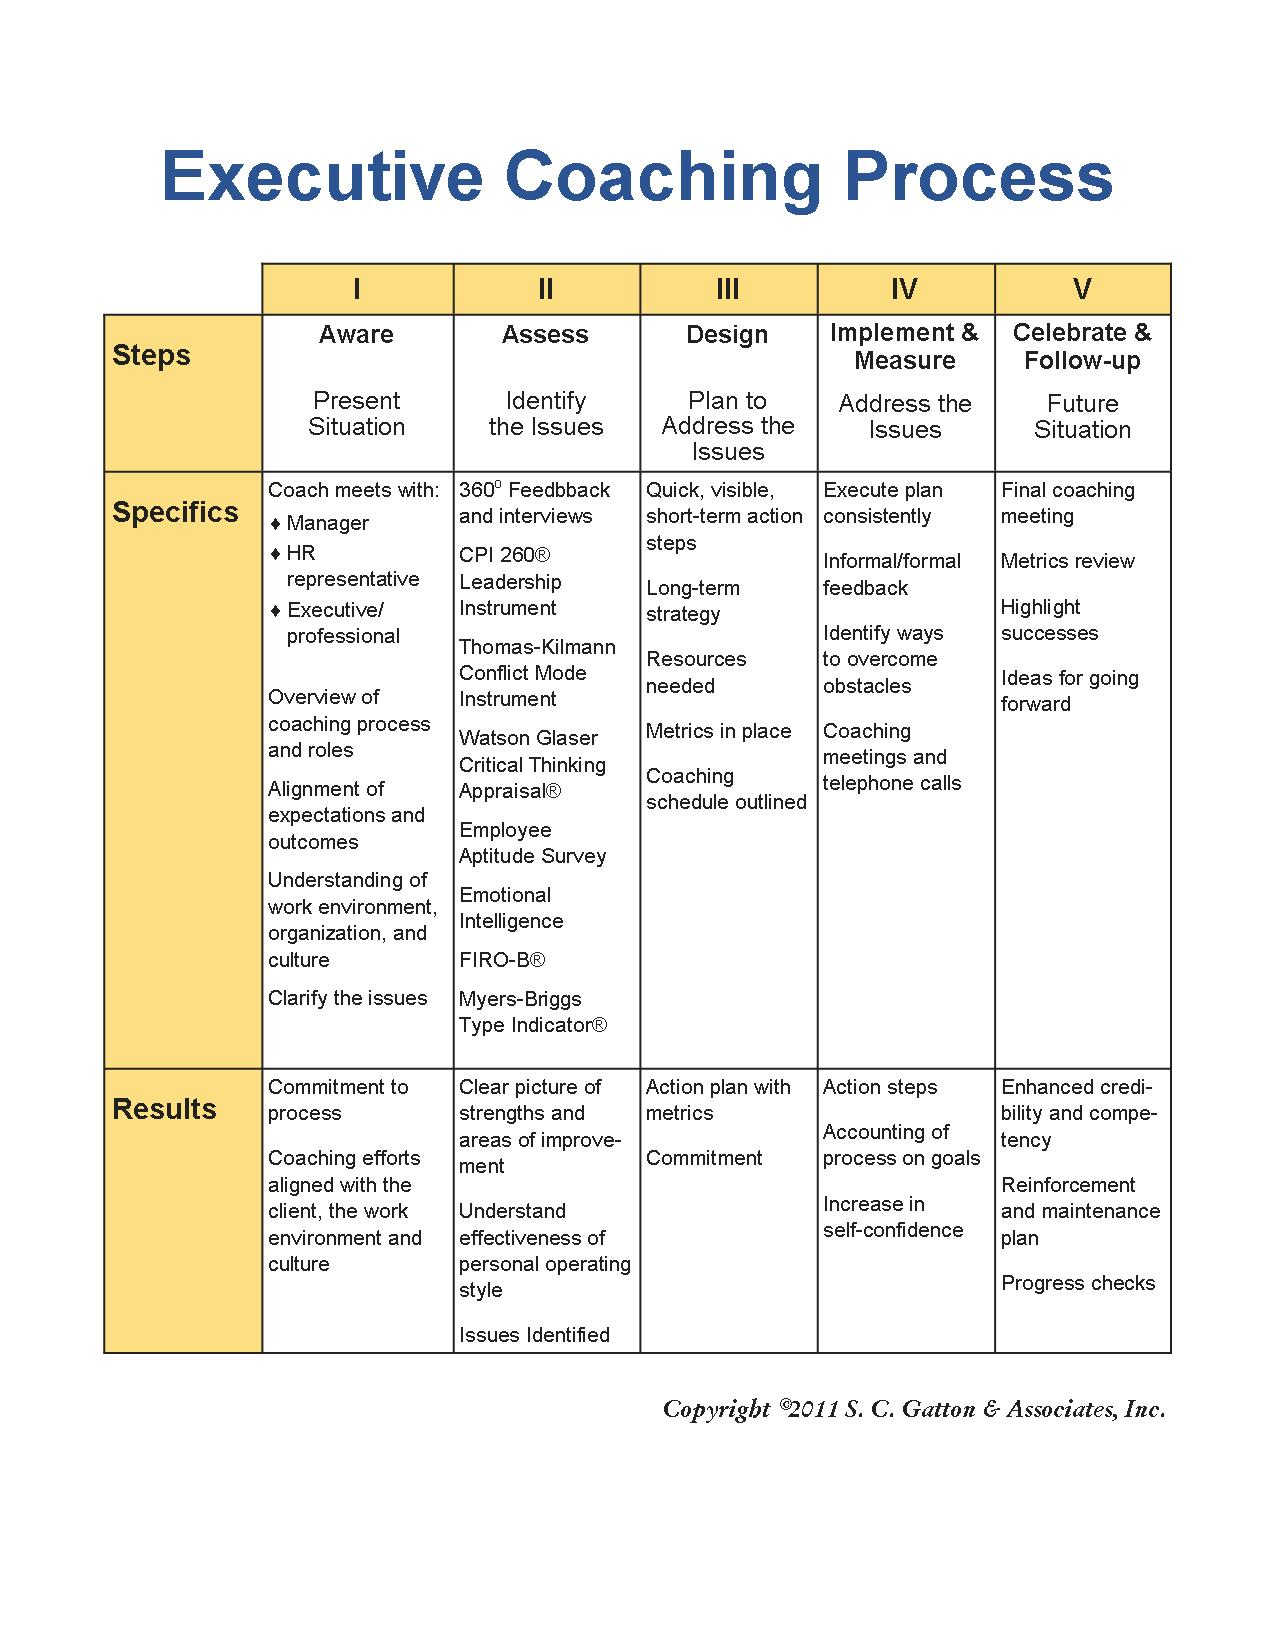 Executive Coaching Process Table